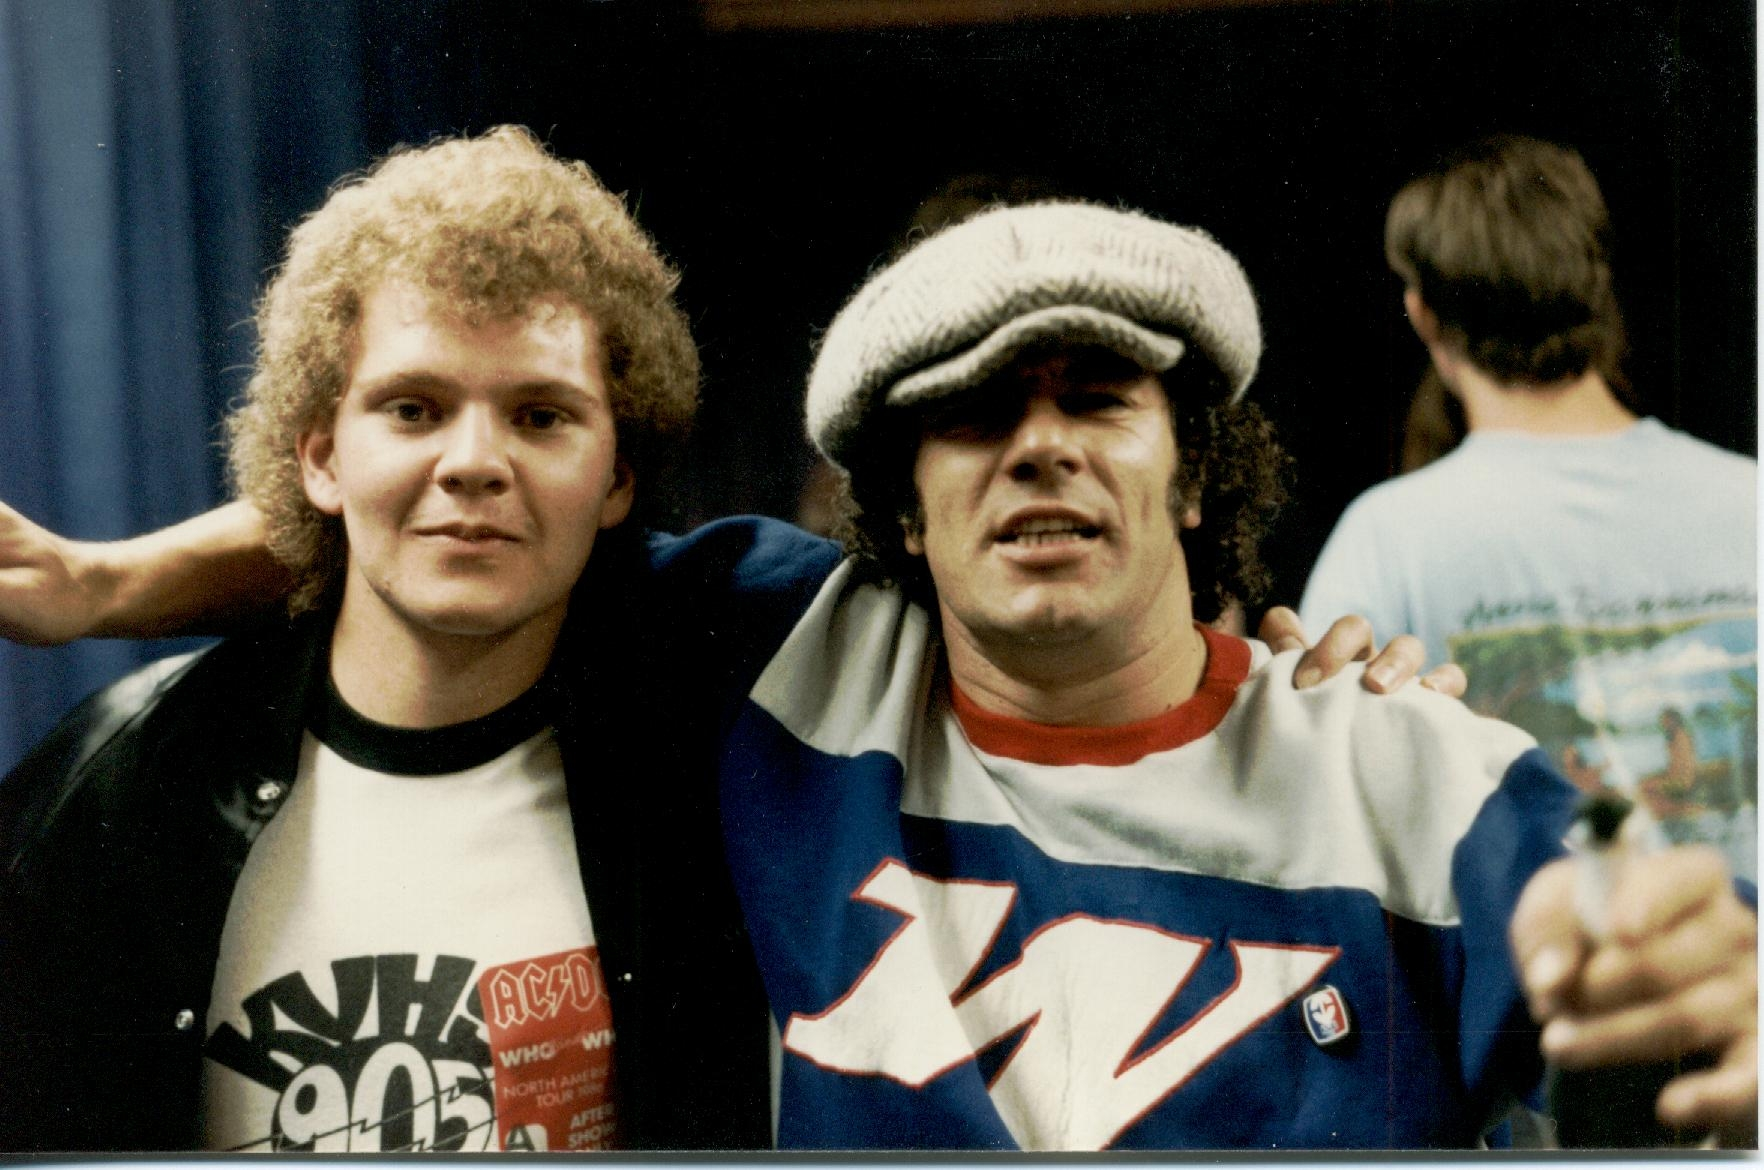 Brian Johnson of ACDC and Chris Cady backstage at the cow palace